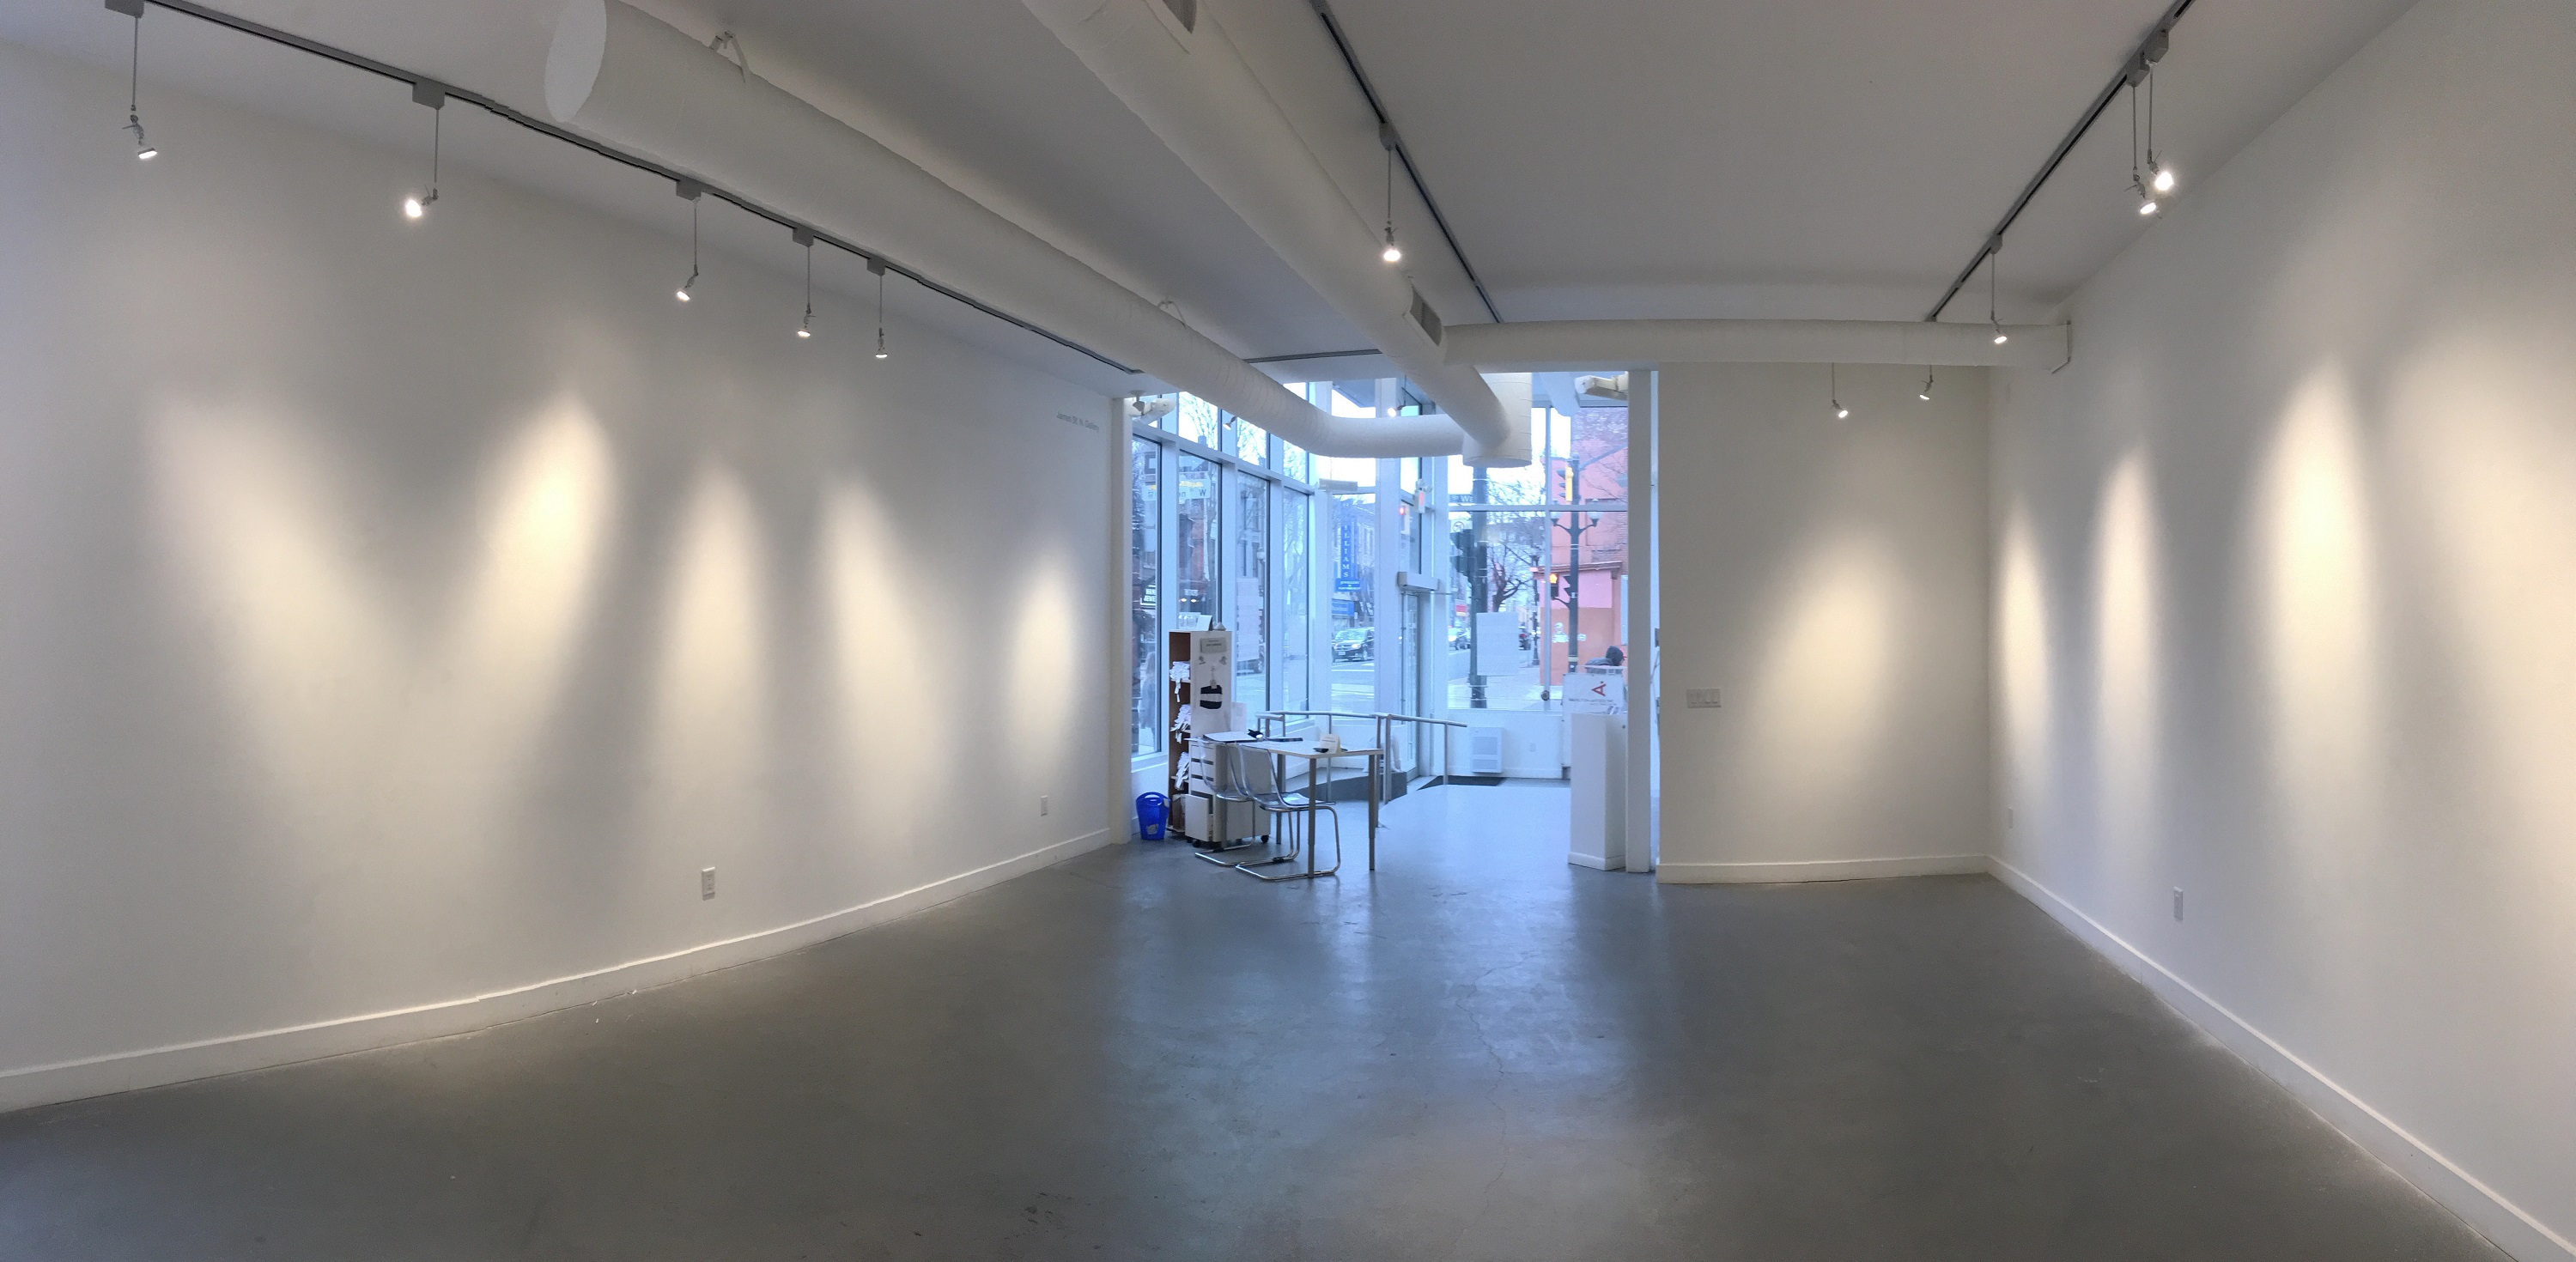 A wide-angle shot of the James Gallery with bare walls. The floor is dark concrete. There are vents and track lighting that run along the ceiling, towards the front entrance. The street corner can be seen through the windows.